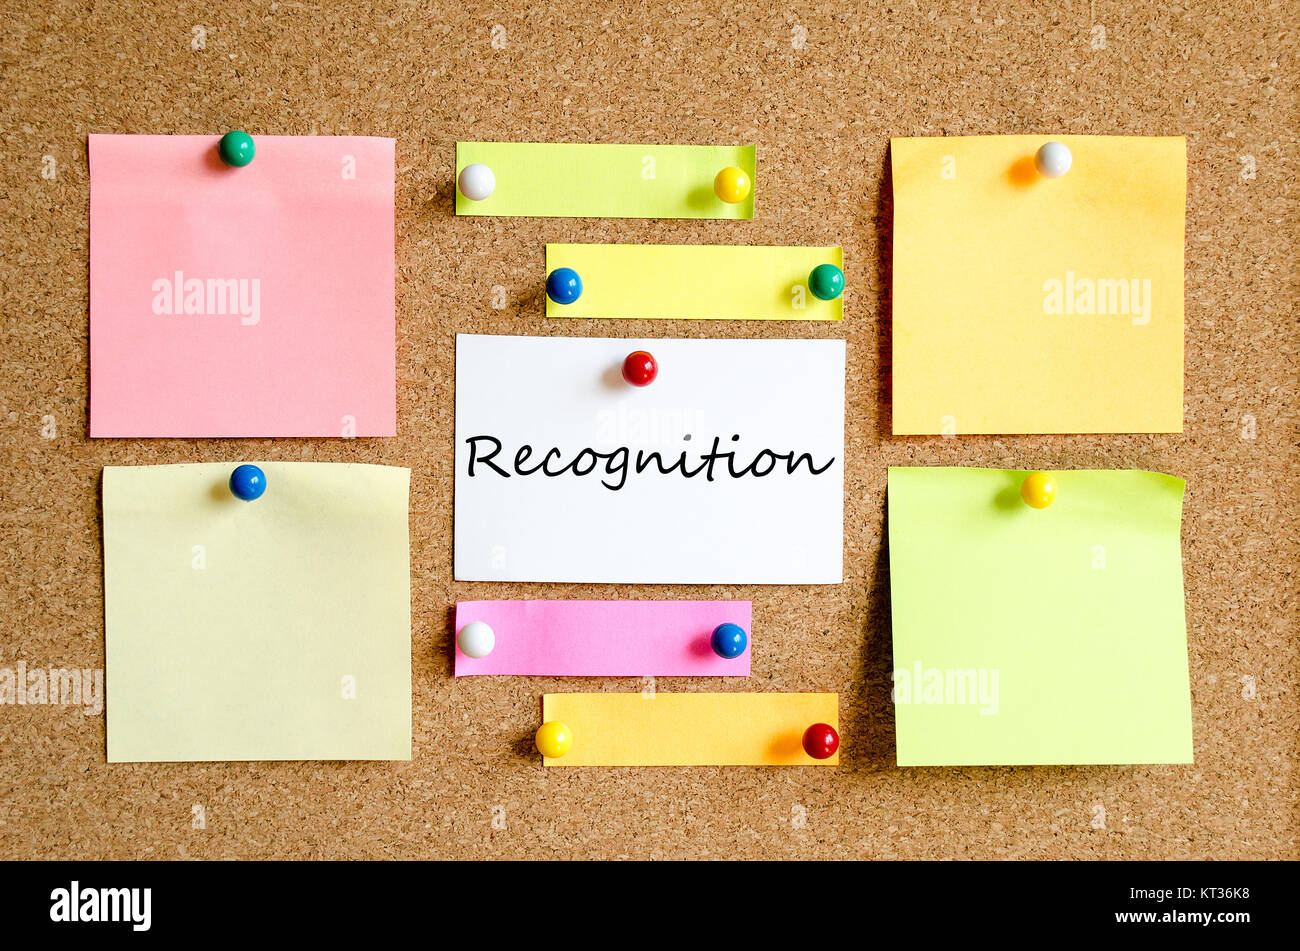 Recognition text concept - Stock Image